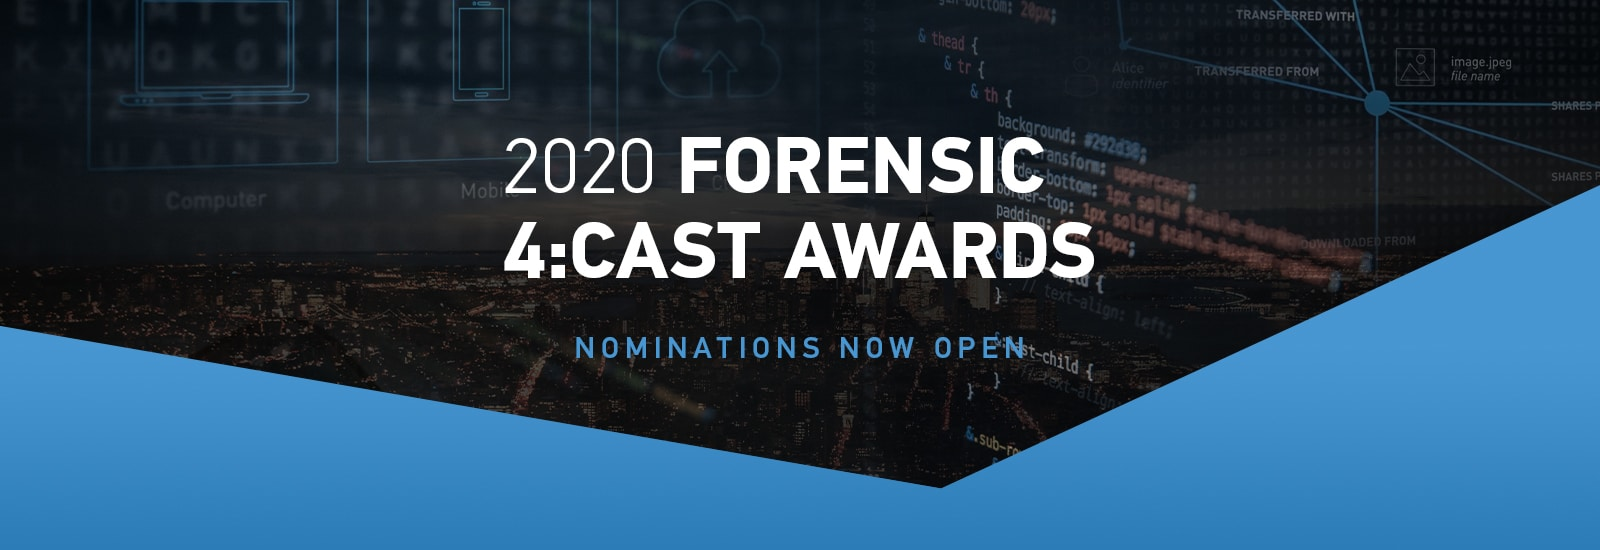 Forensic 4:cast Nominations